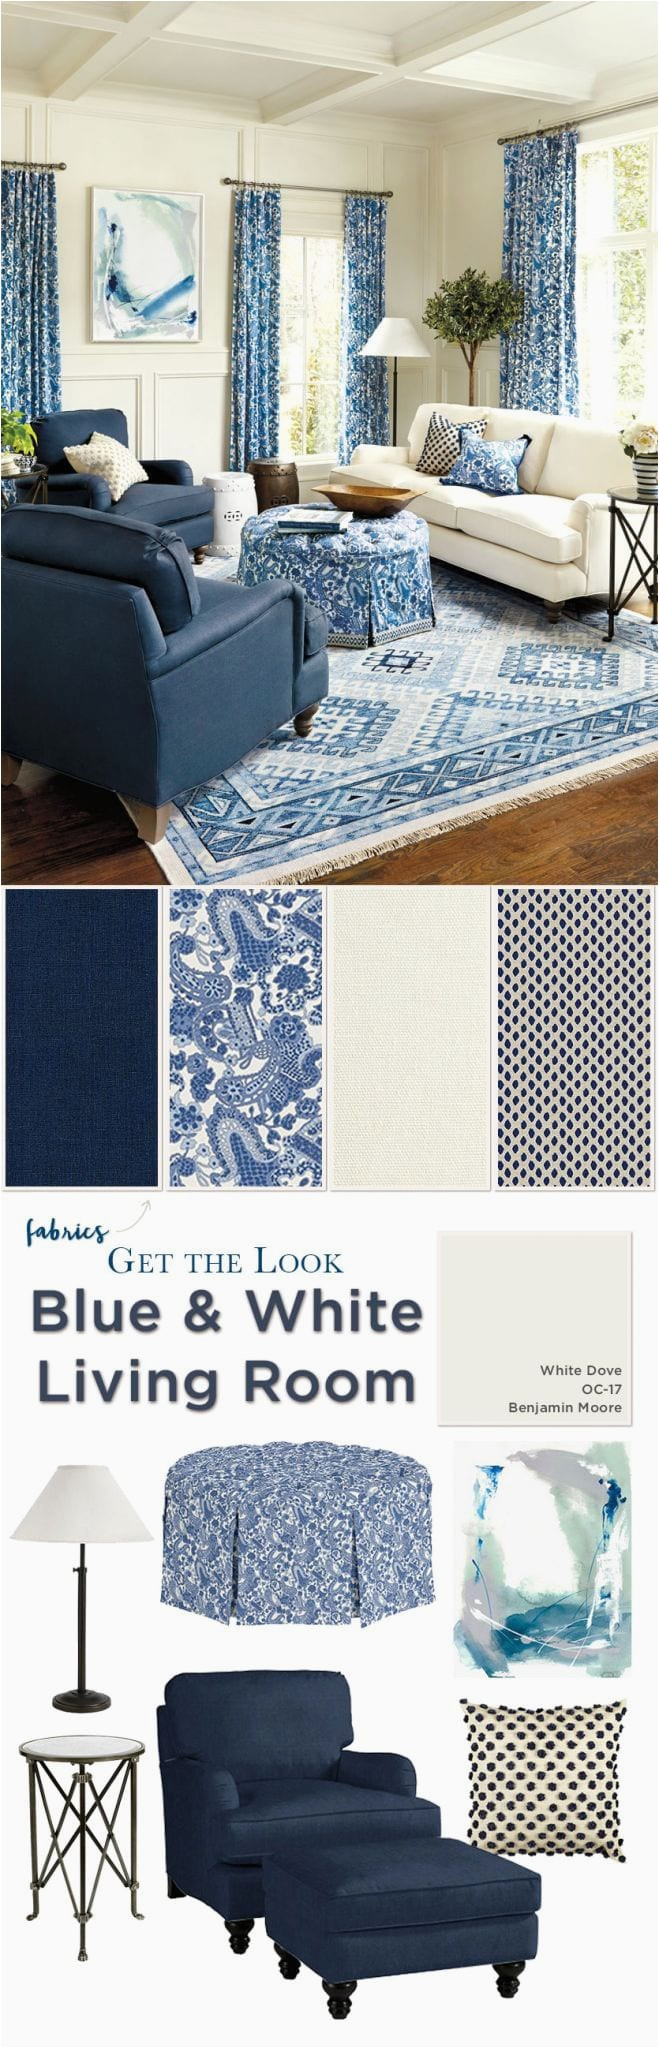 Ballard Designs Rugs Blue Create A Blue & White Living Room